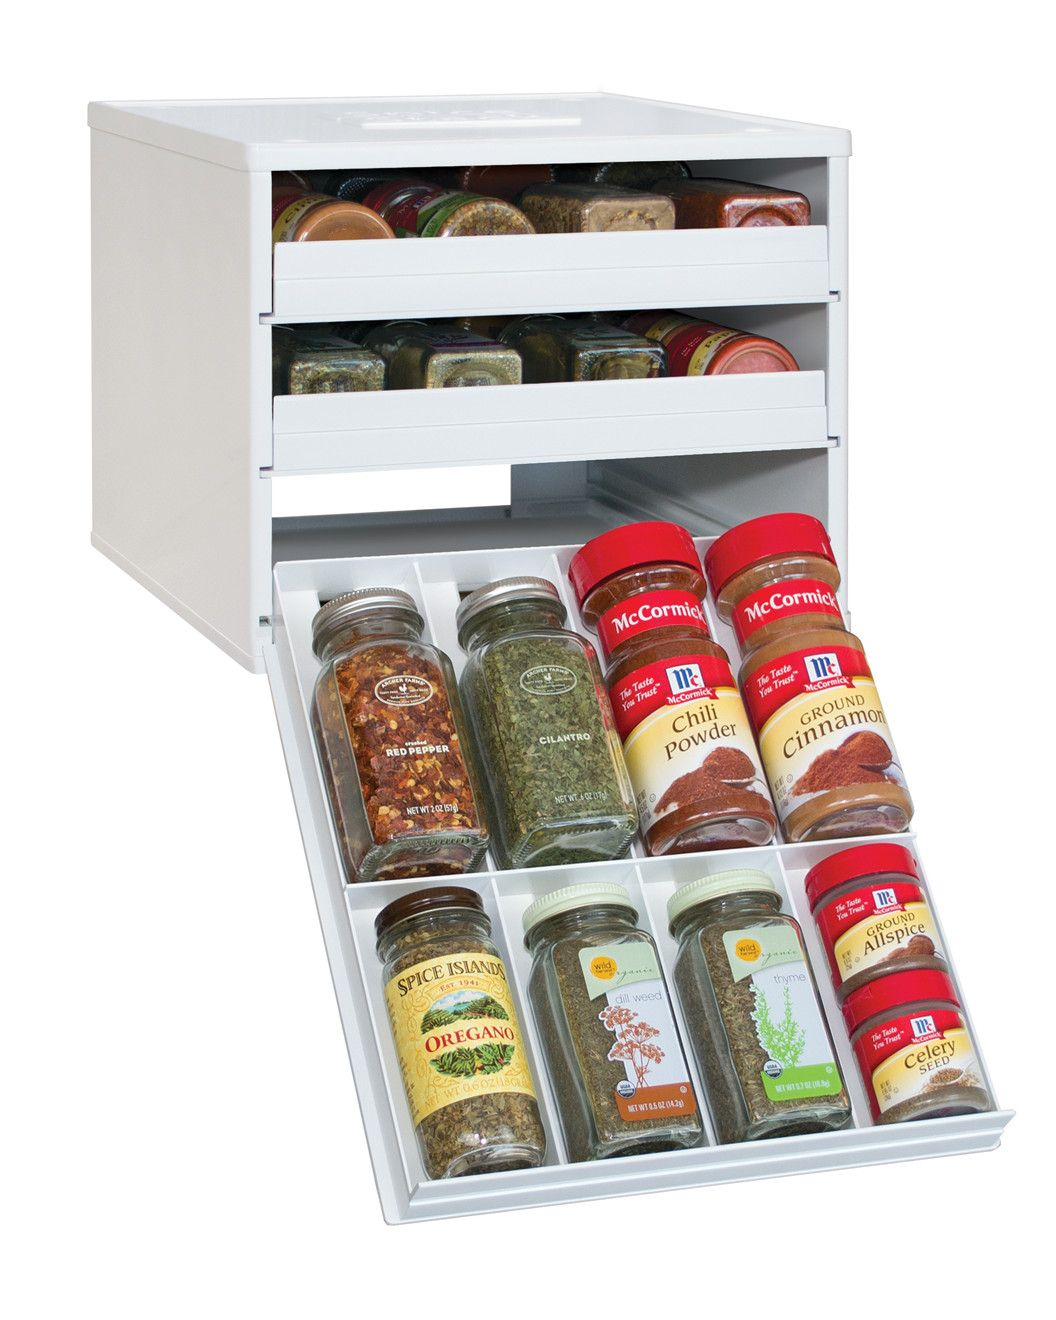 Woodworking Plans For Kitchen Spice Rack: Spotted This SpiceStack 24-Bottle Spice Organizer On Rue